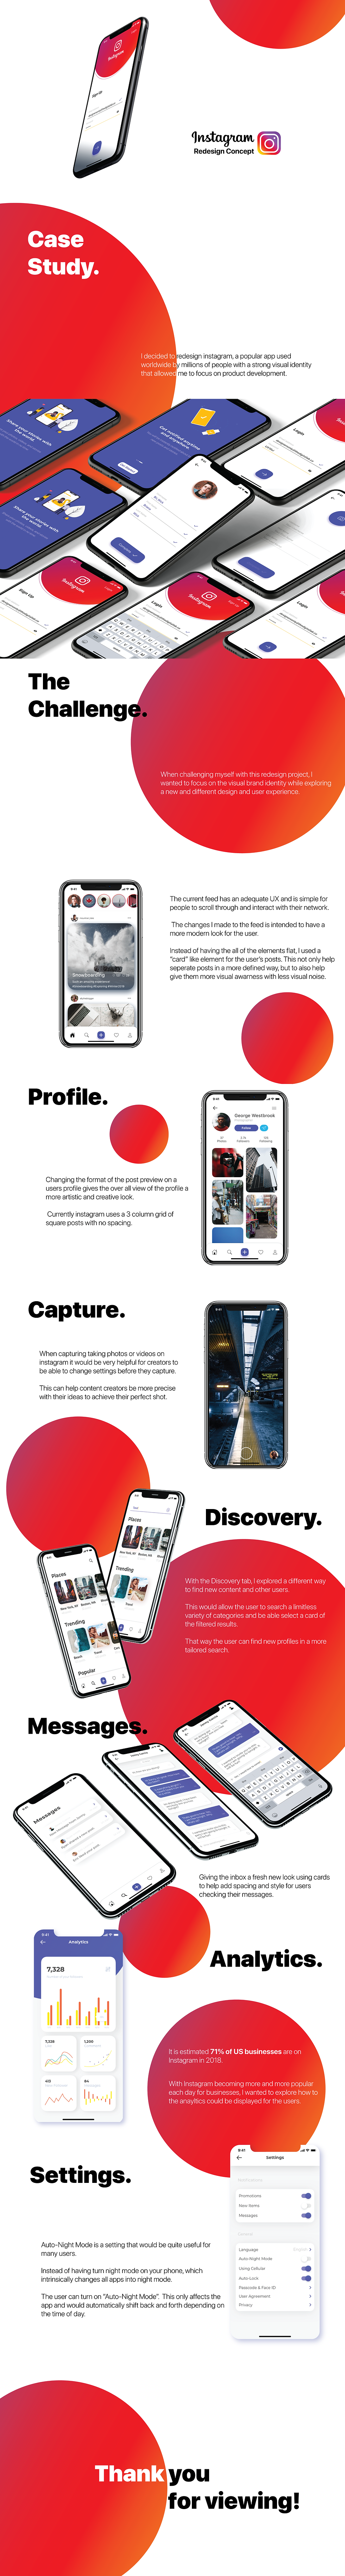 Instagram Redesign-01.png